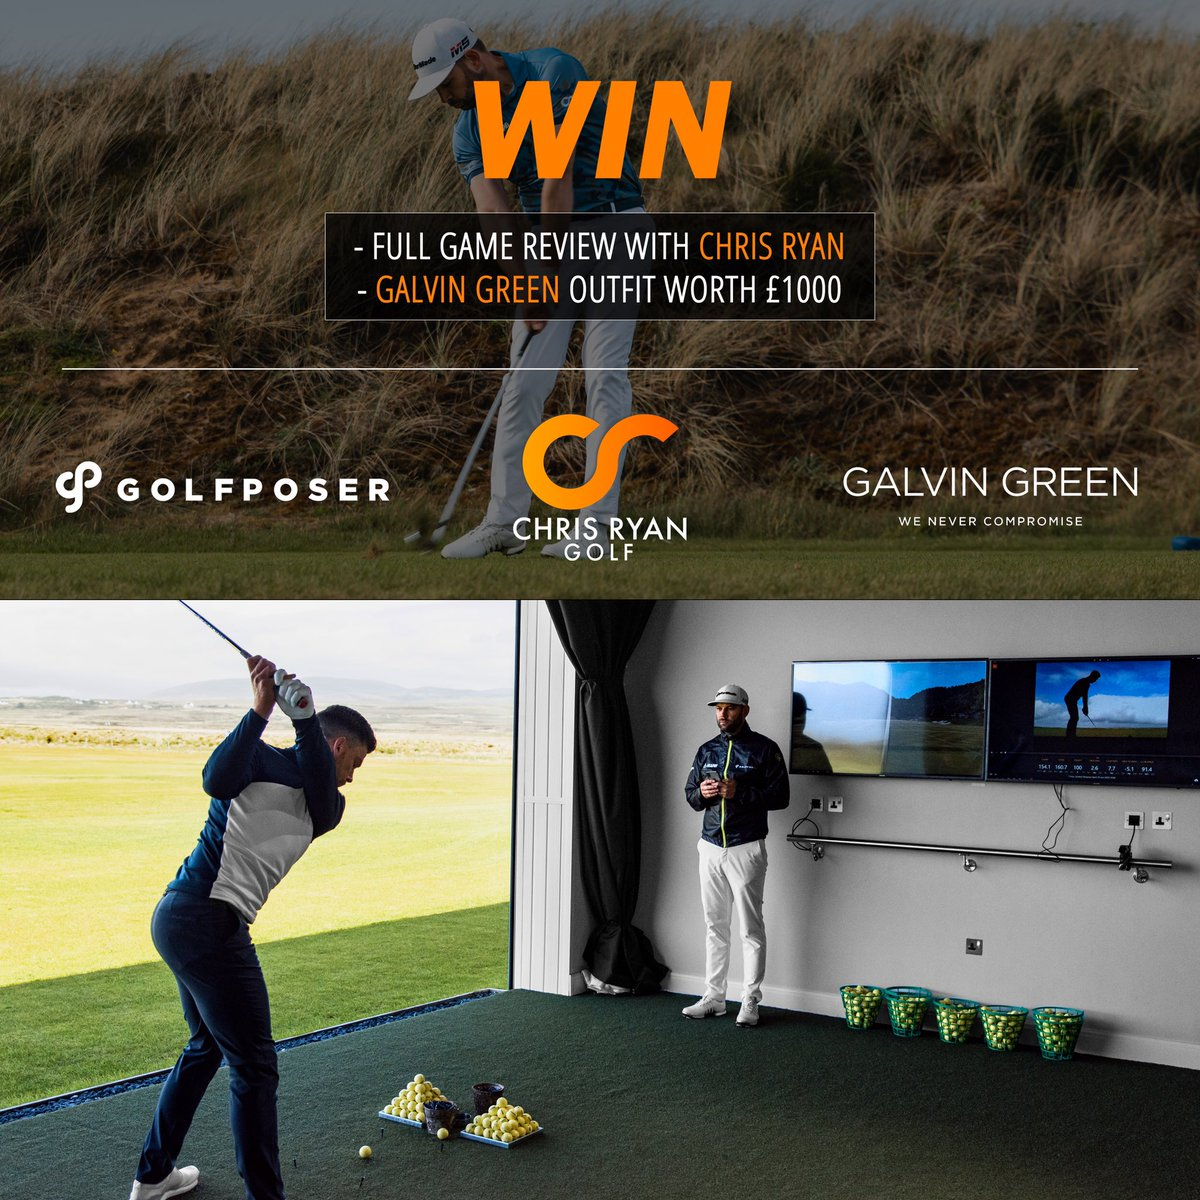 Want to win £1000 worth of @galvingreen clothing plus a coaching experience with myself? Head over to the @Golfposer page on Instagram, find this image/post in their page, follow the instructions and be in with a chance, good luck!